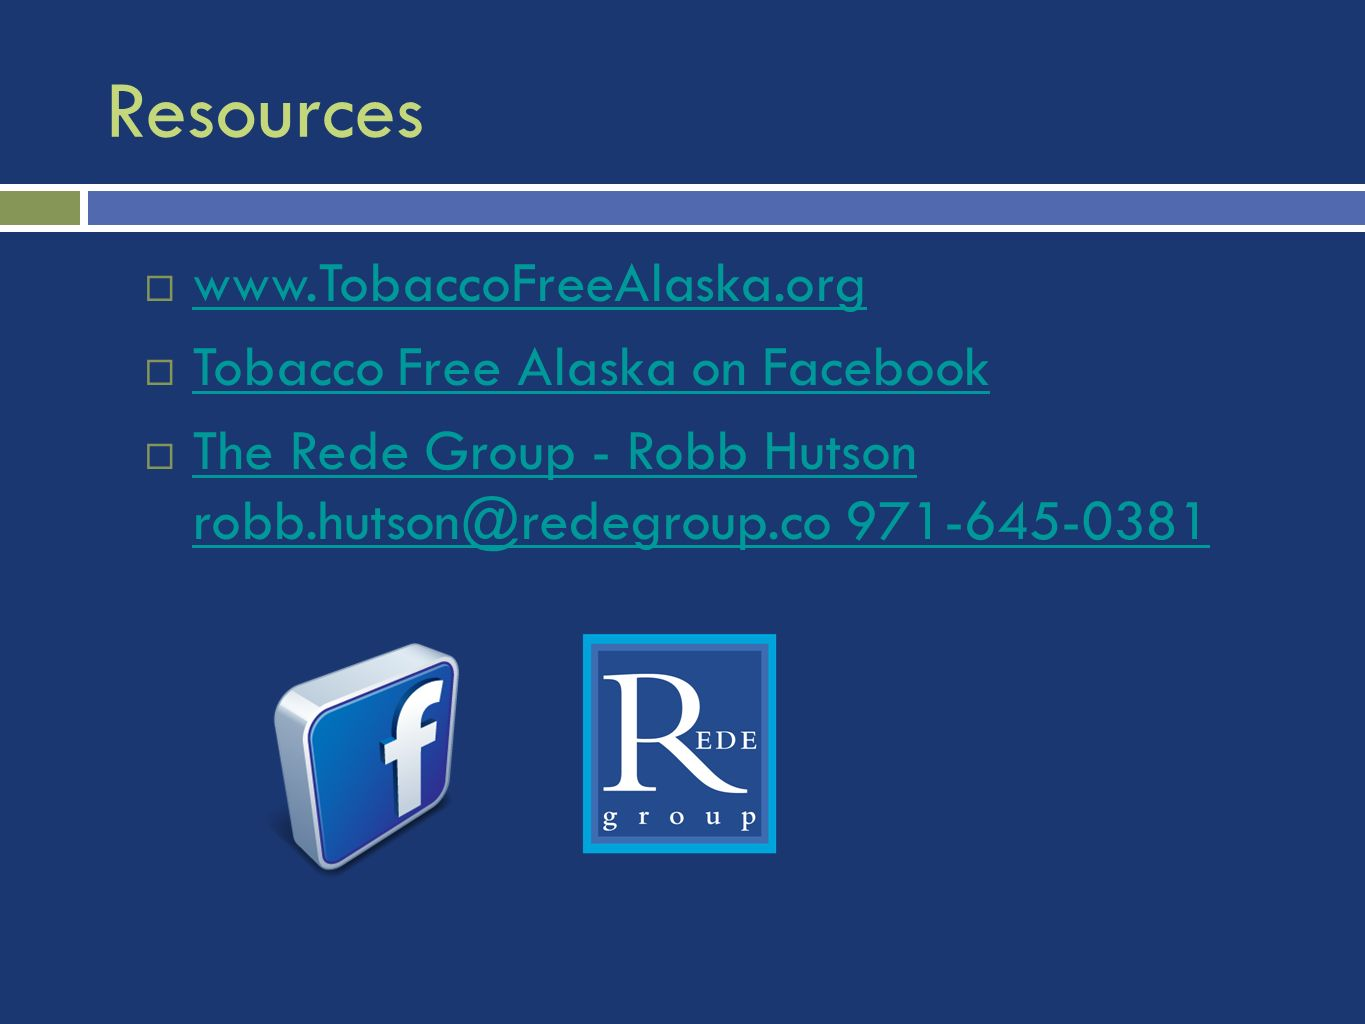 Resources www.TobaccoFreeAlaska.org Tobacco Free Alaska on Facebook The Rede Group - Robb Hutson robb.hutson@redegroup.co 971-645-0381 The Rede Group - Robb Hutson robb.hutson@redegroup.co 971-645-0381